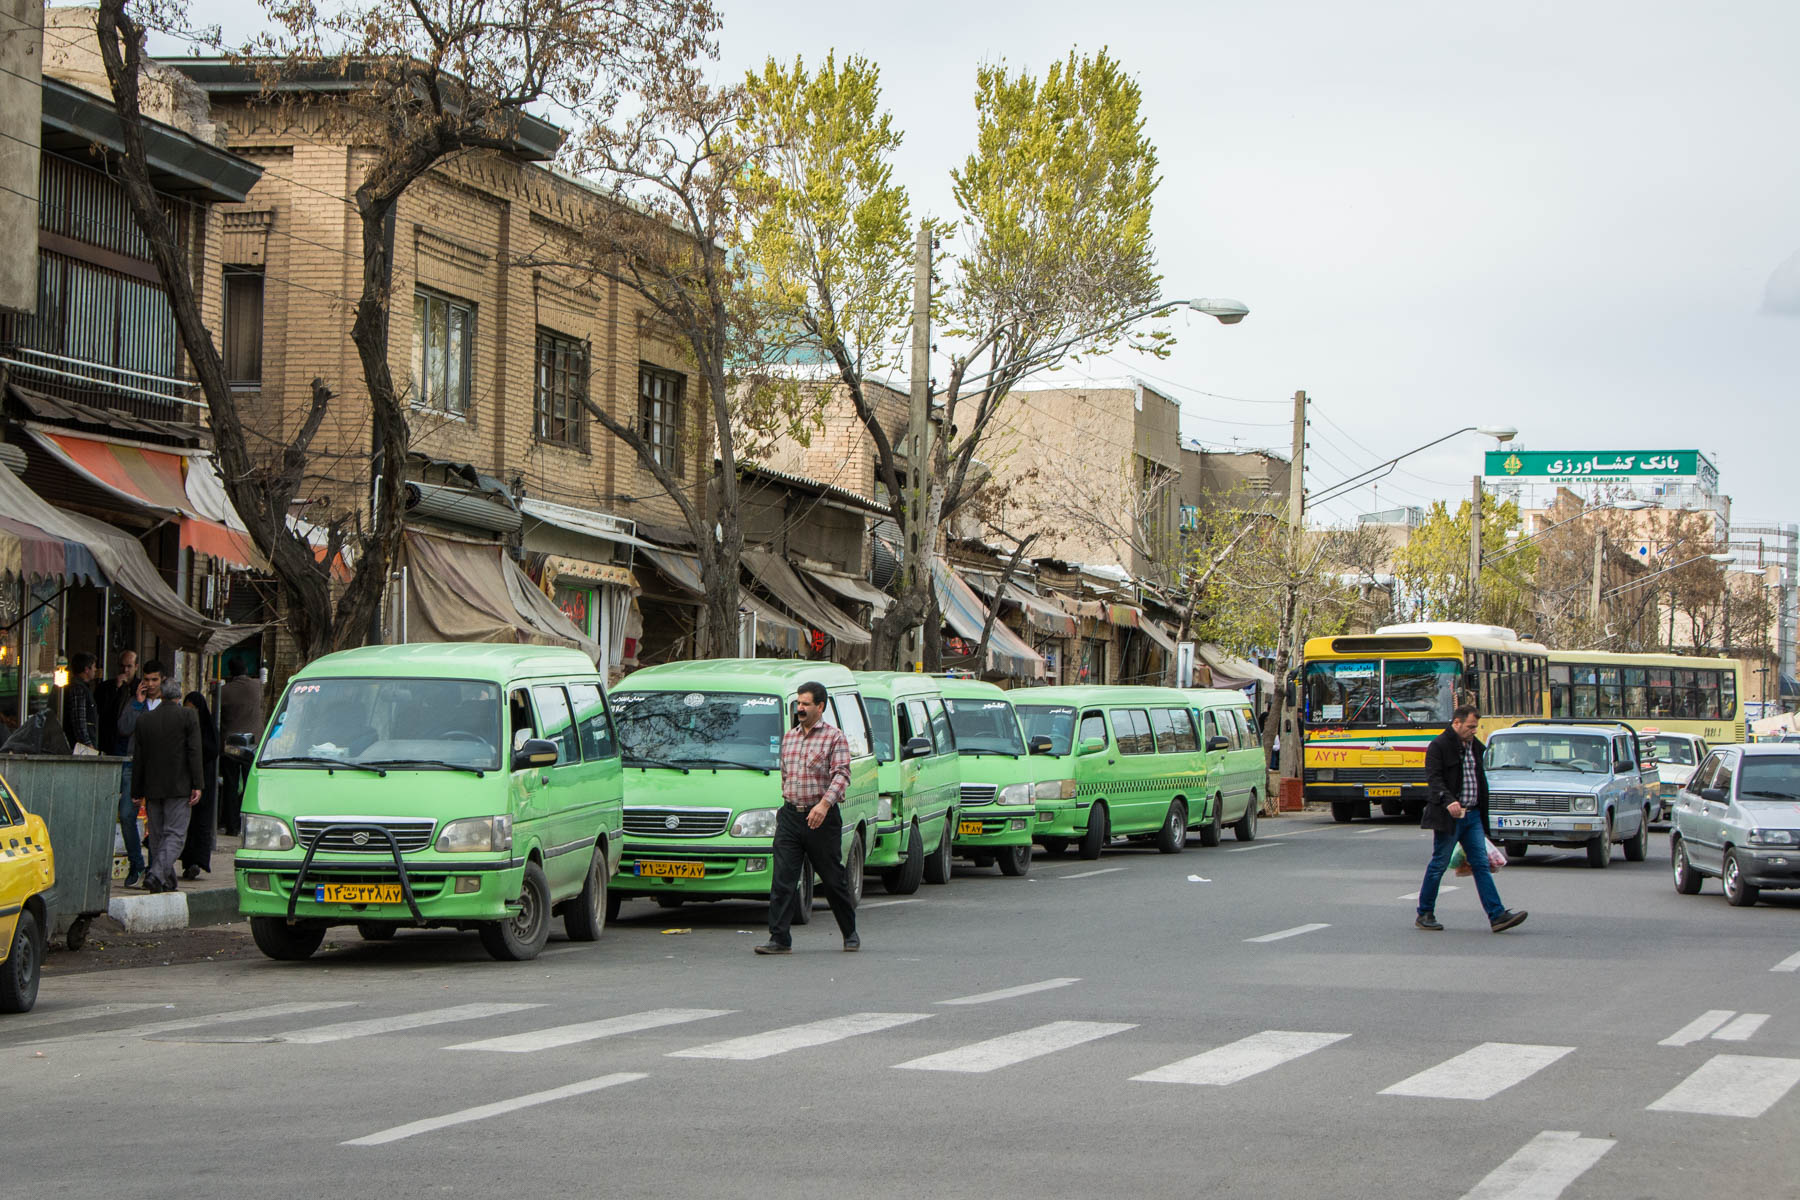 Zanjan shuttles that are part of how to get to Soltaniyeh from Zanjan, Iran